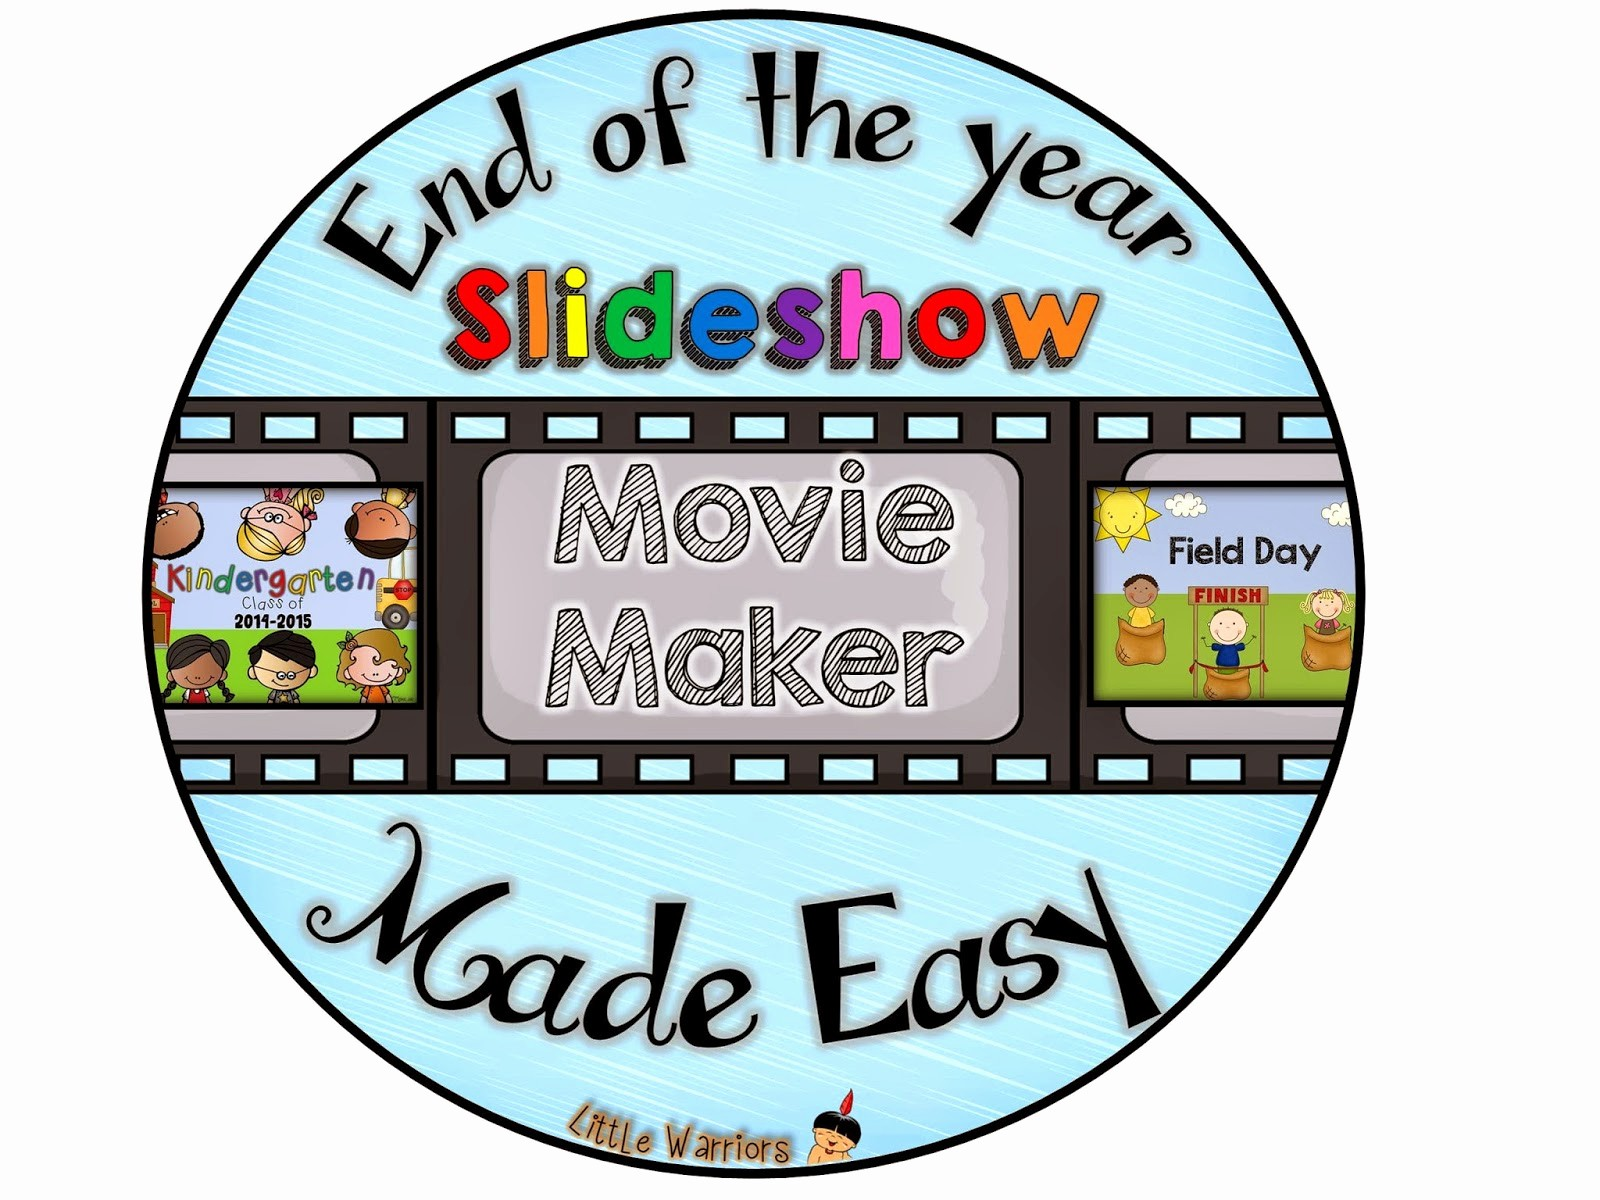 End Of the Year Slideshow Elegant End Of the Year Slideshow Title Slides Music Tutorial